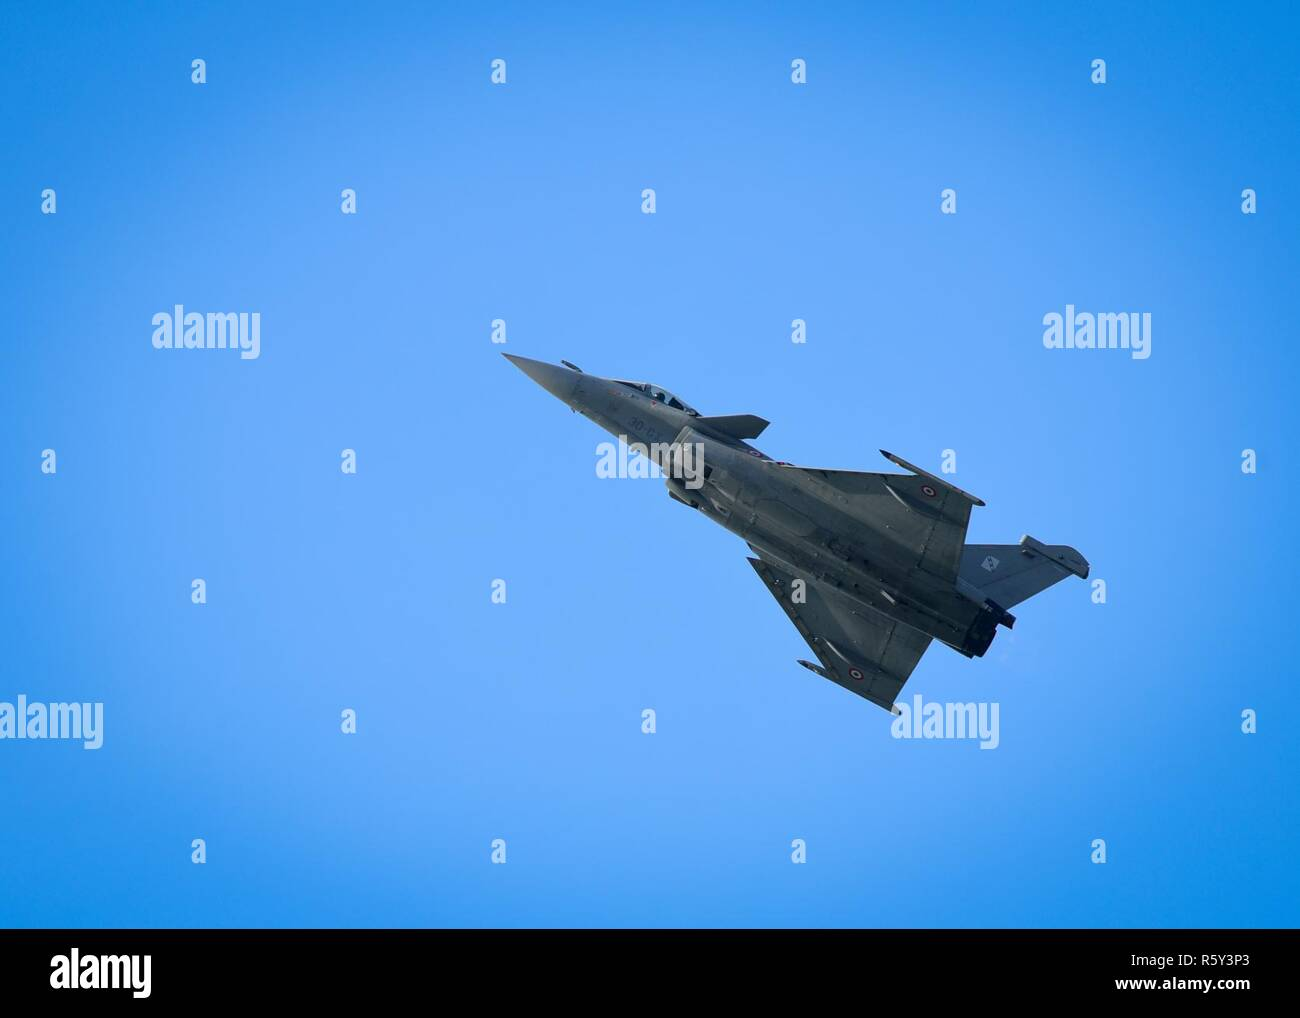 A French air force Dassault Rafale performs a practice demonstration